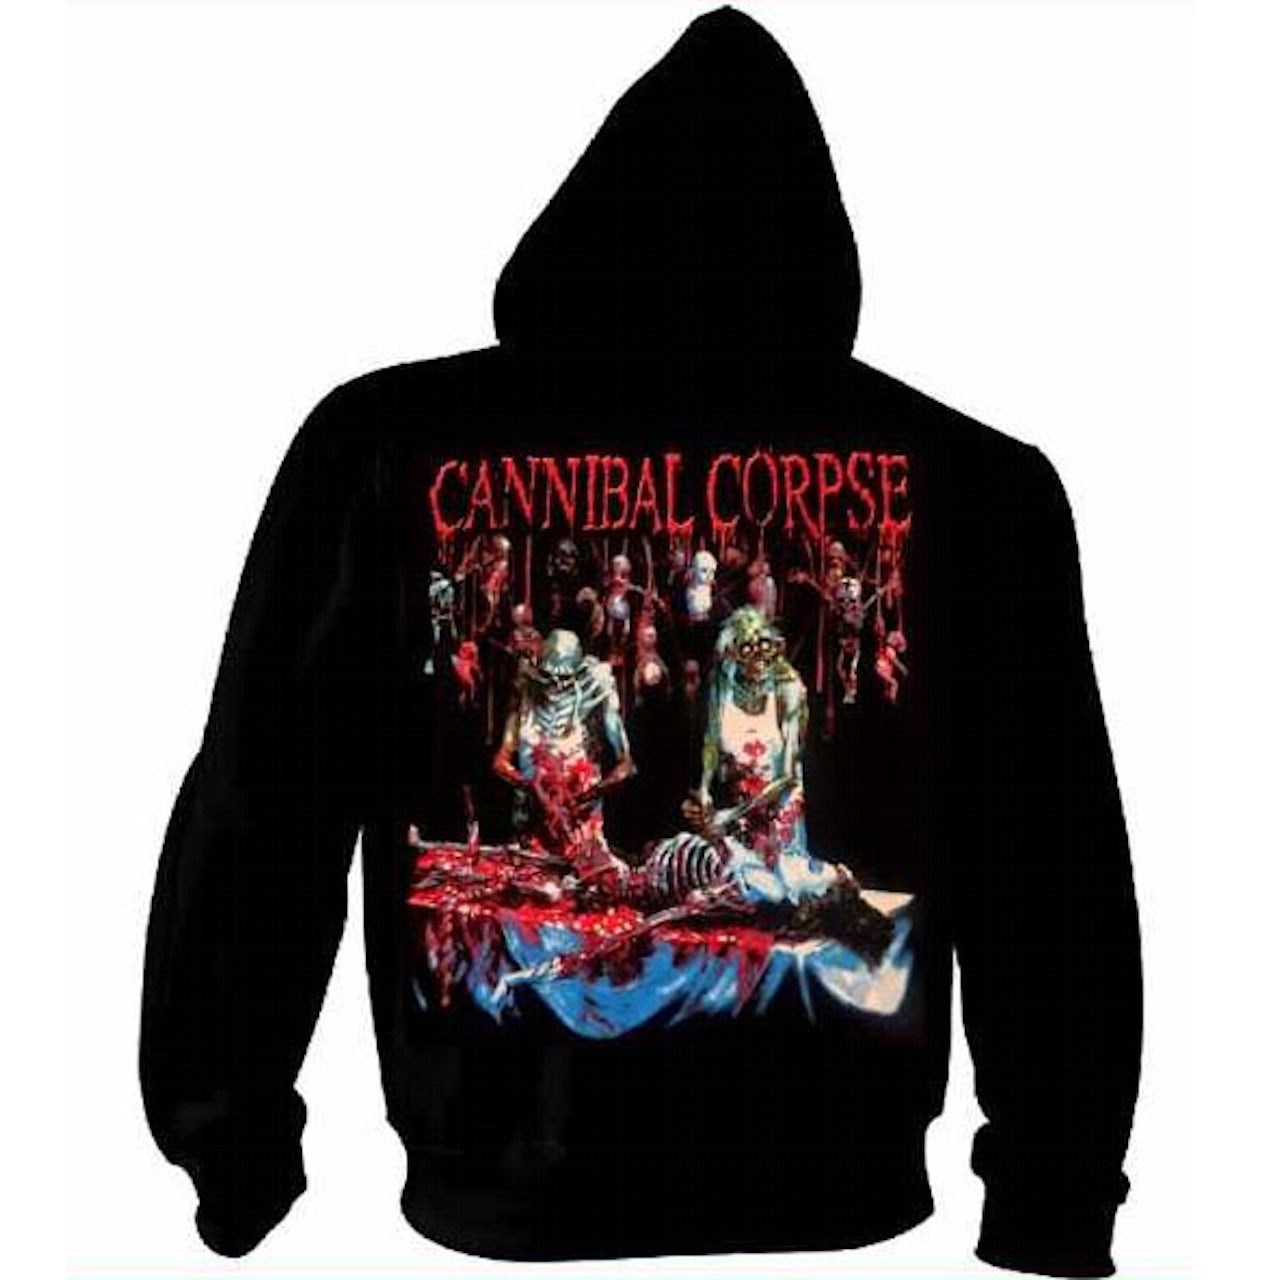 5a4a46c375c Cannibal Corpse Butchered At Birth Zip Hoodie. Touch to zoom